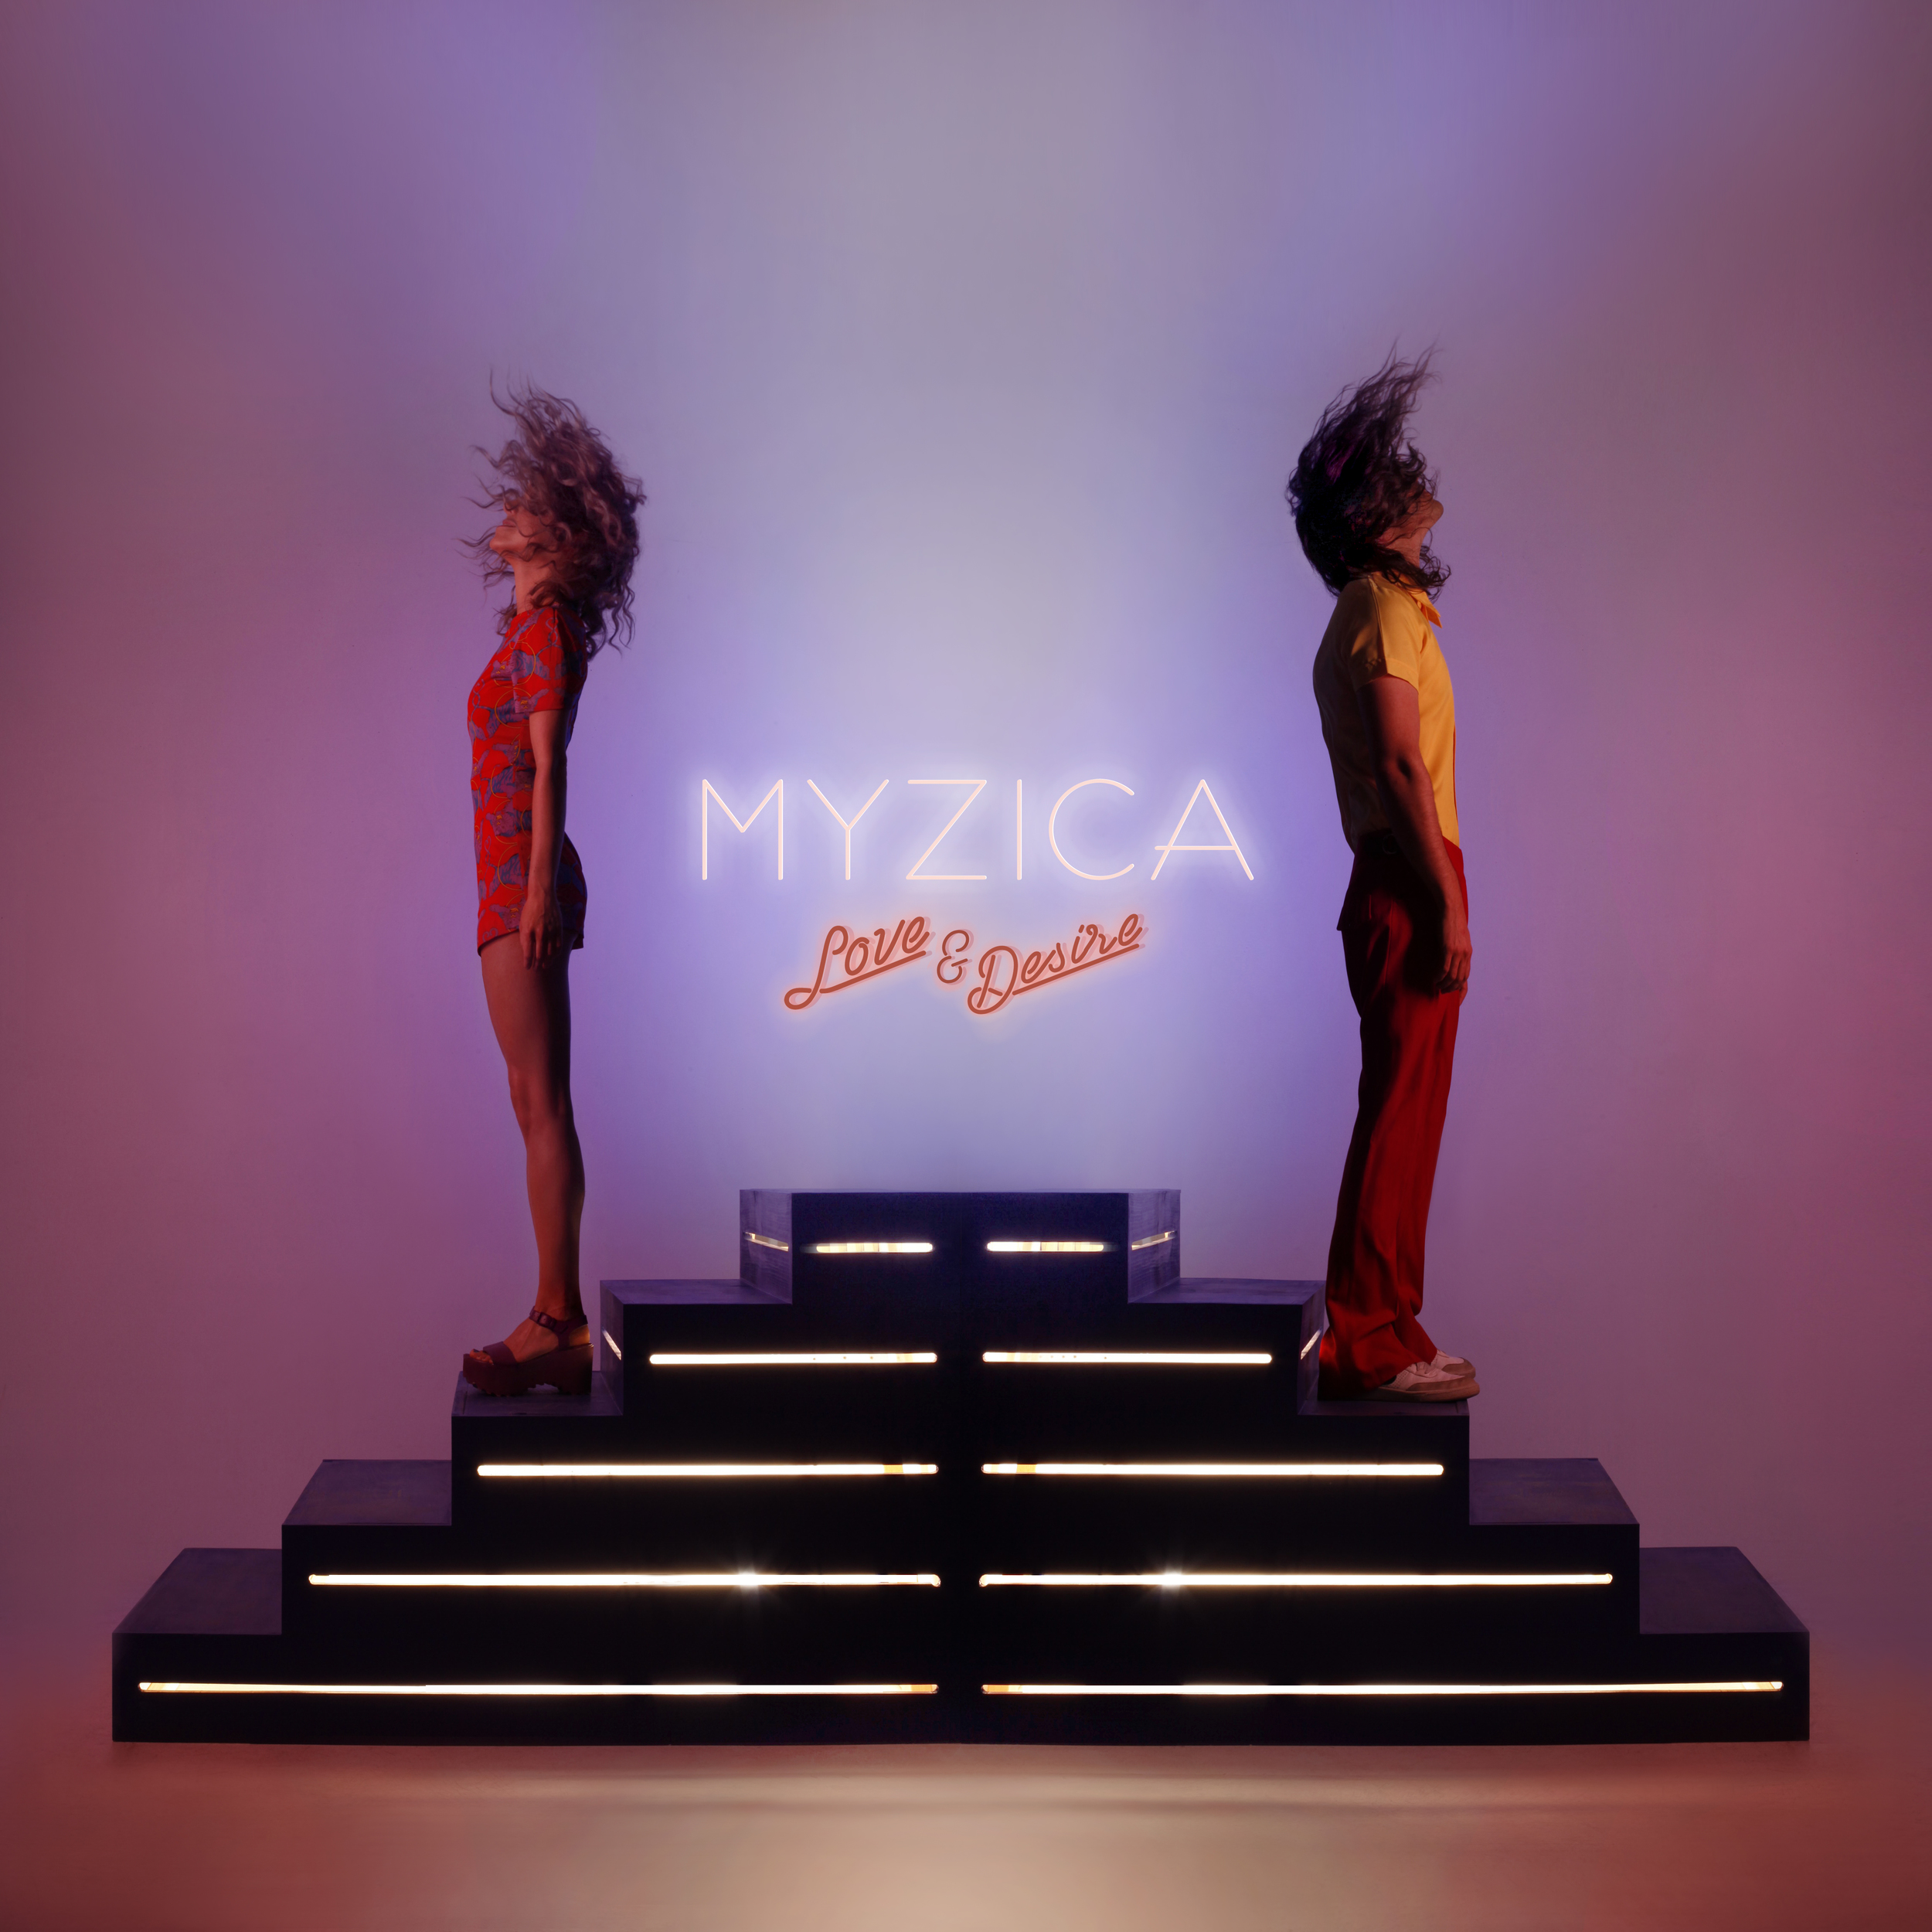 myzica love and desire cover FINAL 18x300.jpg